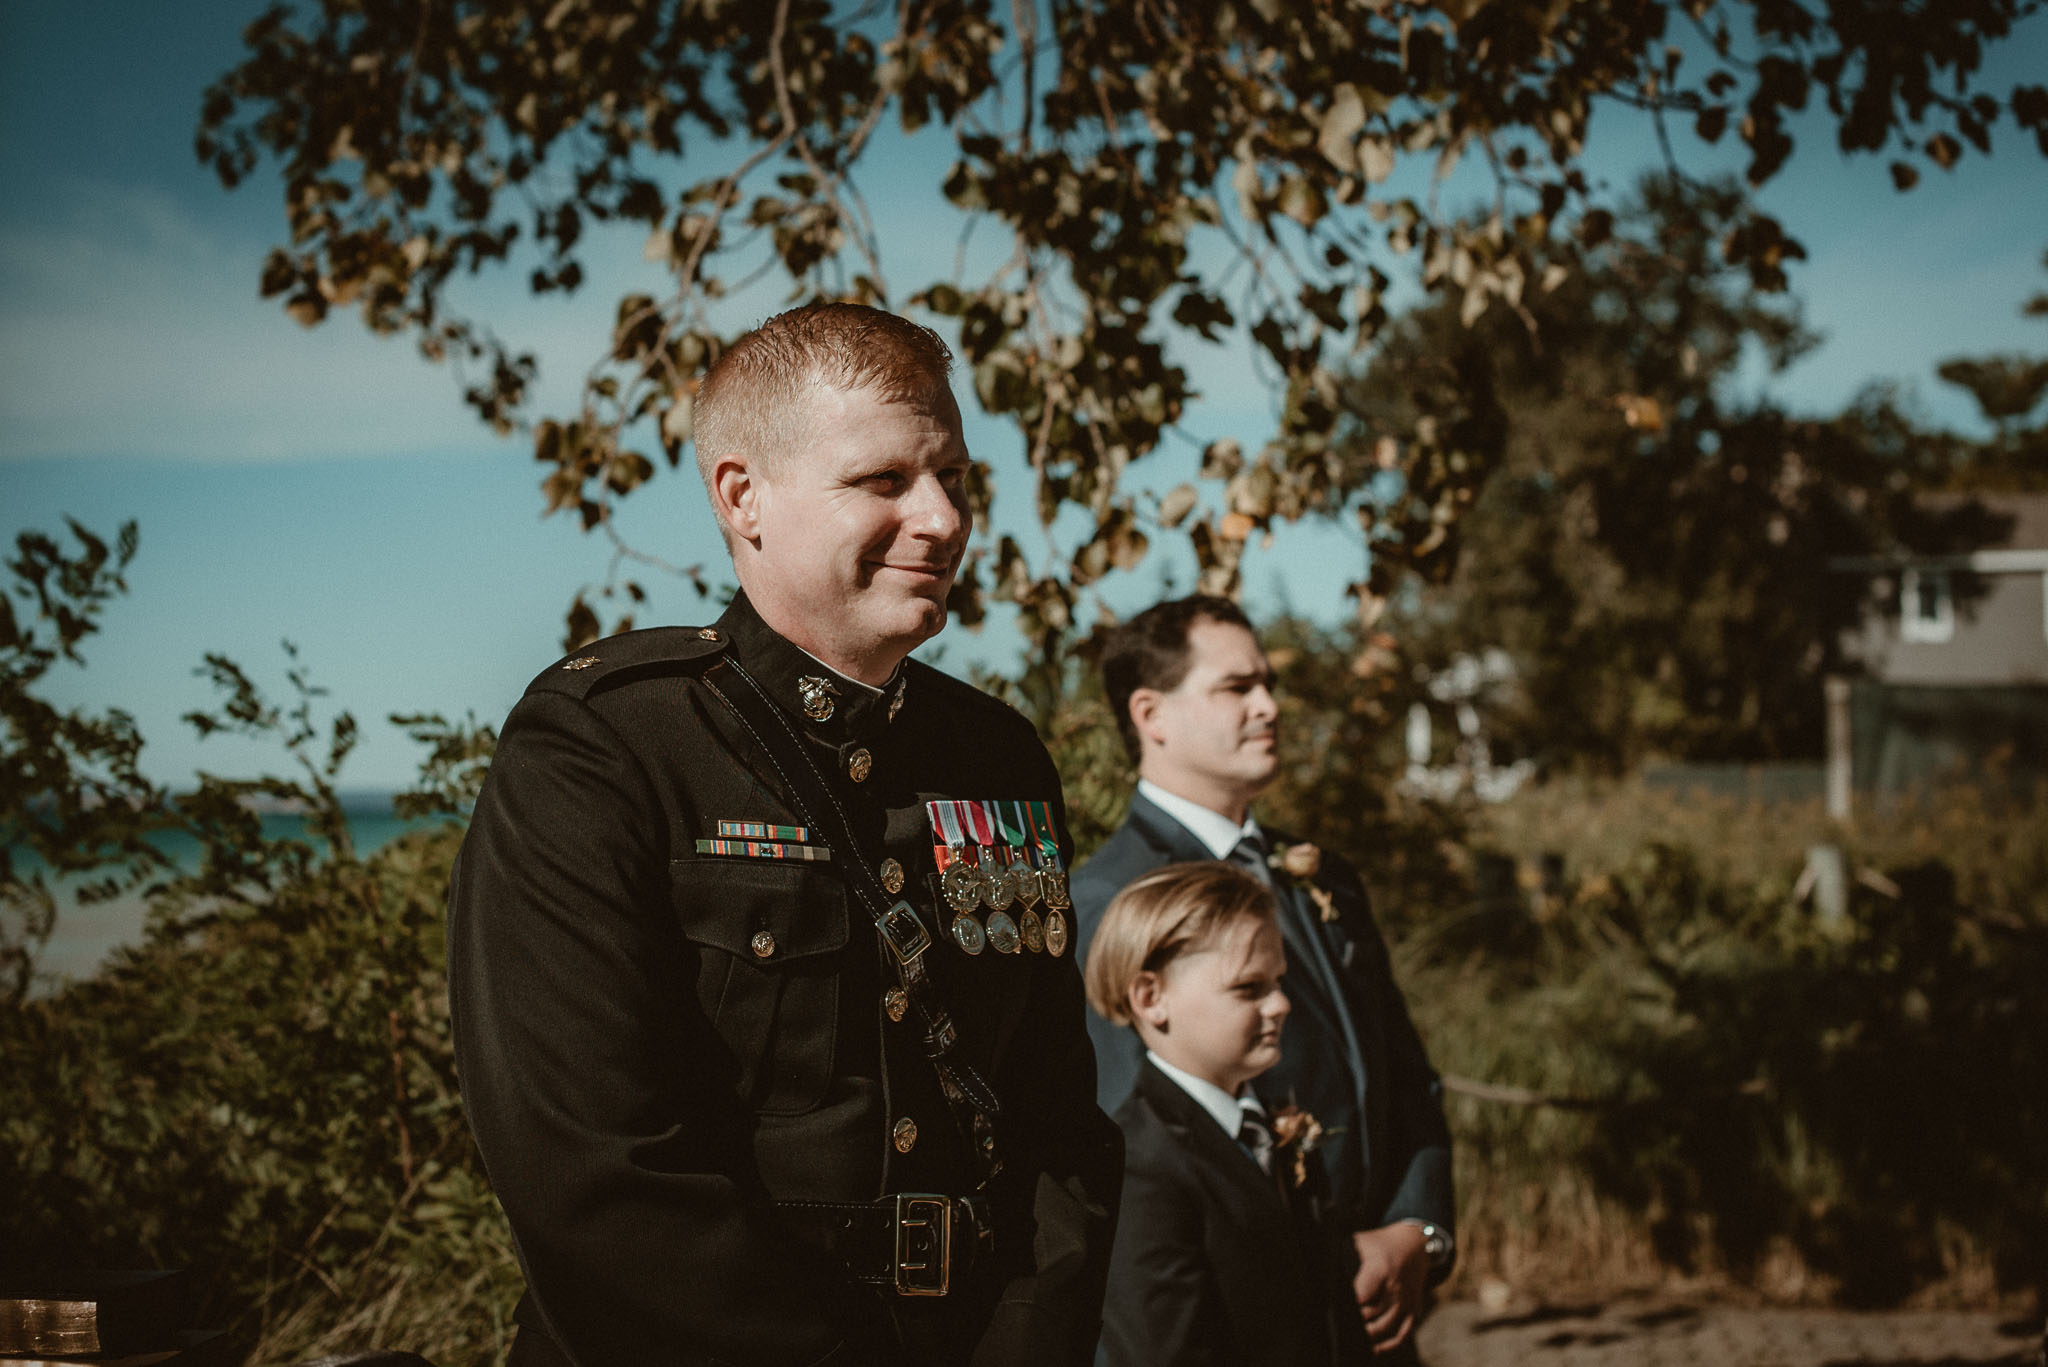 The groom smiling, watching his bride being walked towards him by her father.